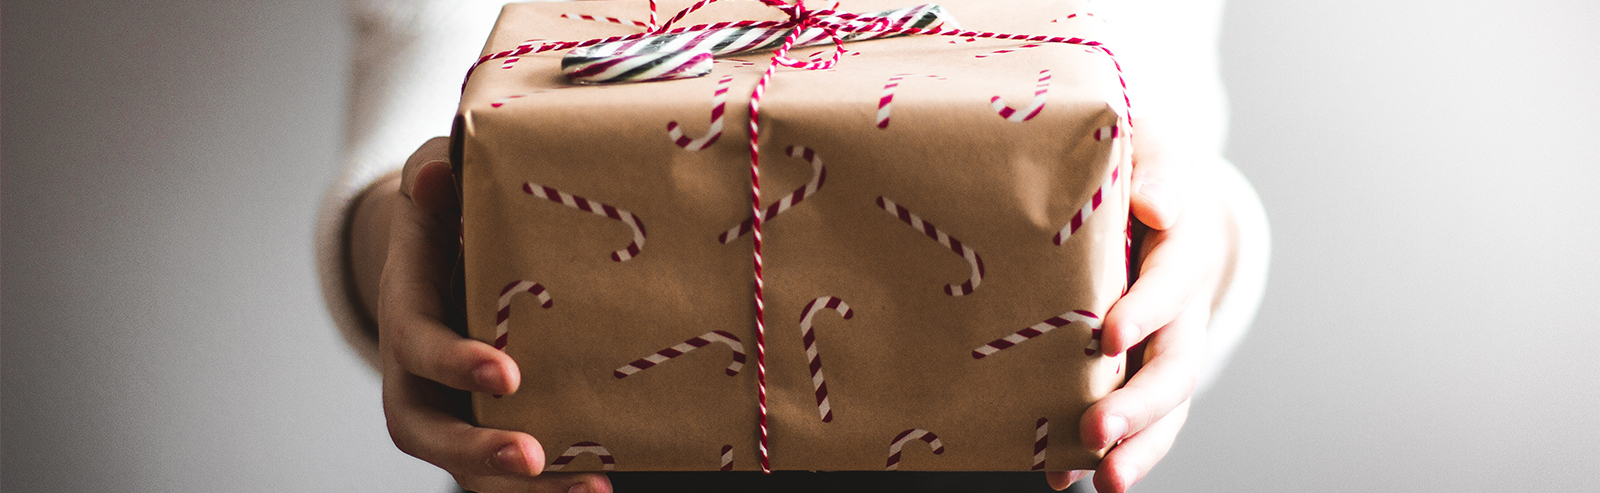 person holding out wrapped christmas gift